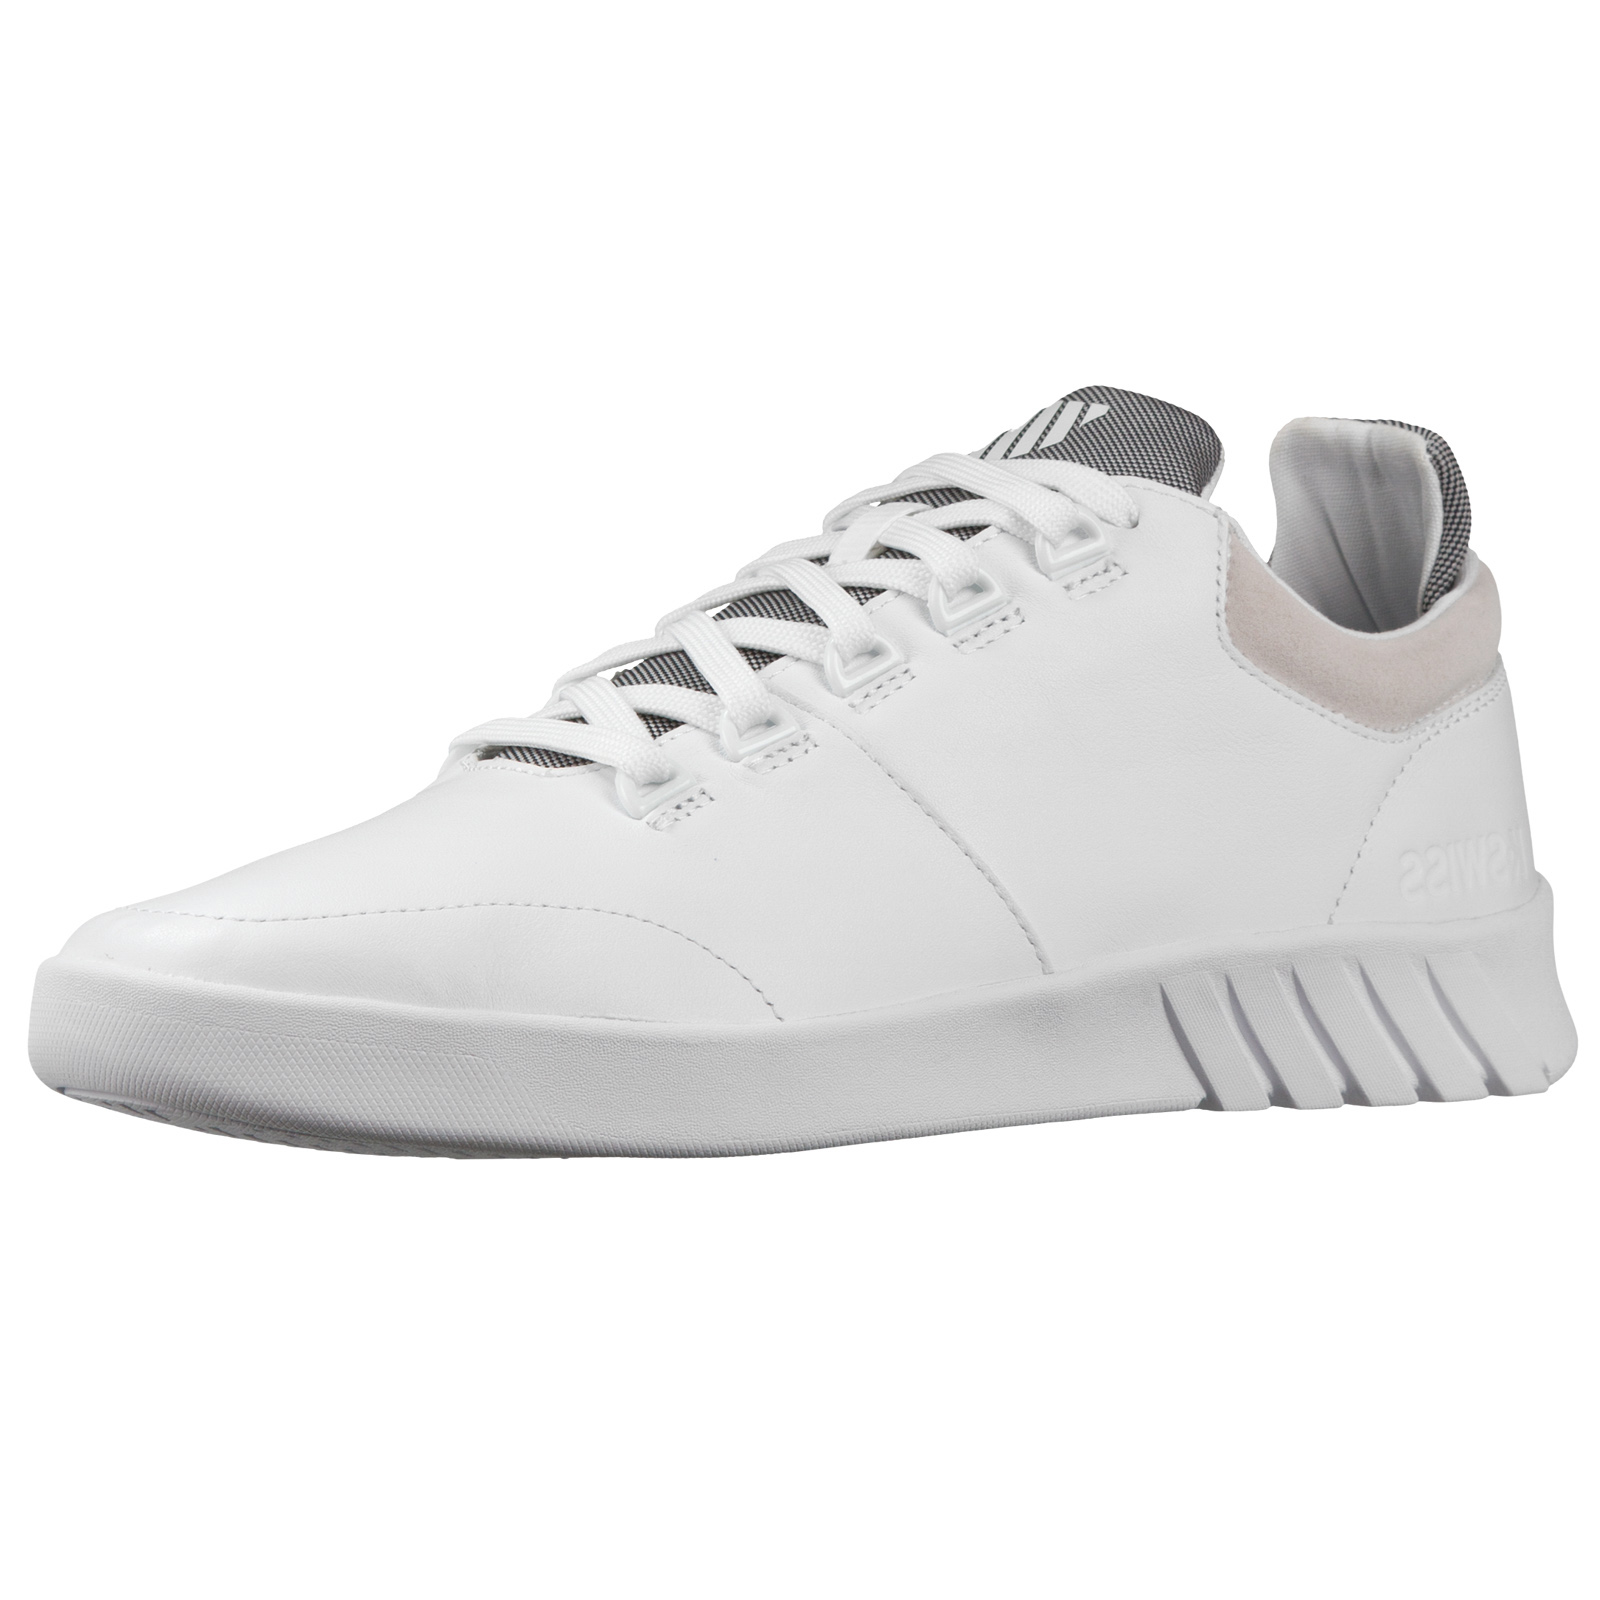 K-Swiss Mens Aero Trainer Premium Designer Ortholite Sole Low Top Sports Shoes